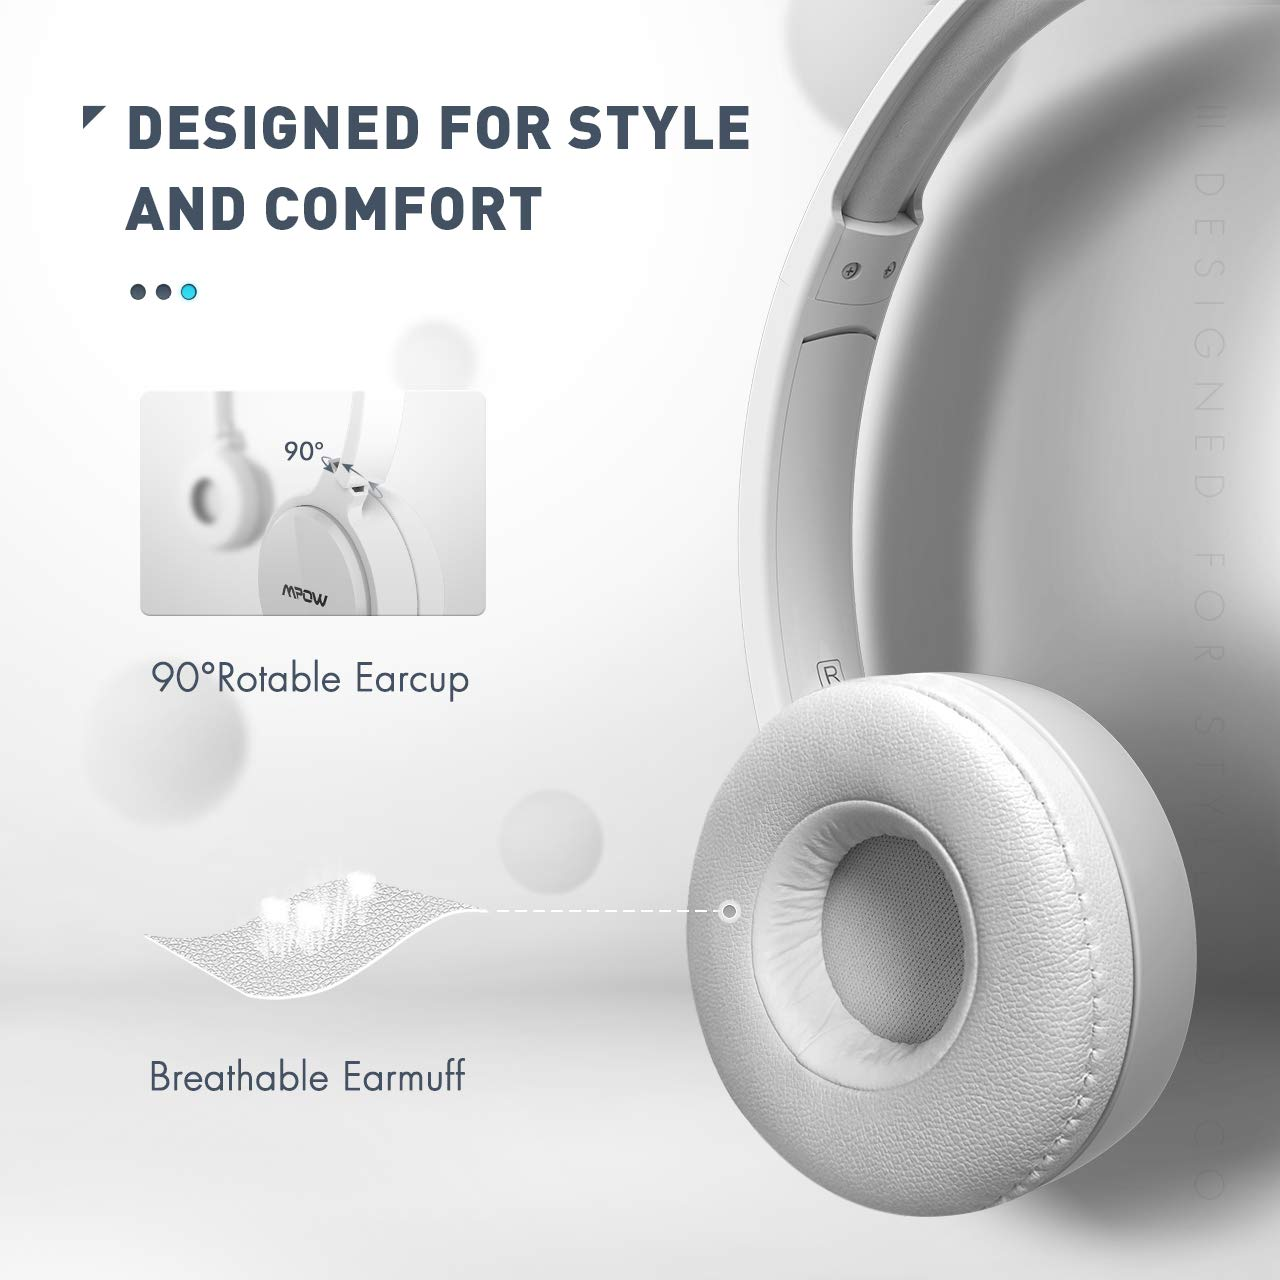 Webinar Lightweight PC Headset Wired Headphones Call Center Business Headset for Skype Phone Mpow 071 USB Headset// 3.5mm Computer Headset with Microphone Noise Cancelling